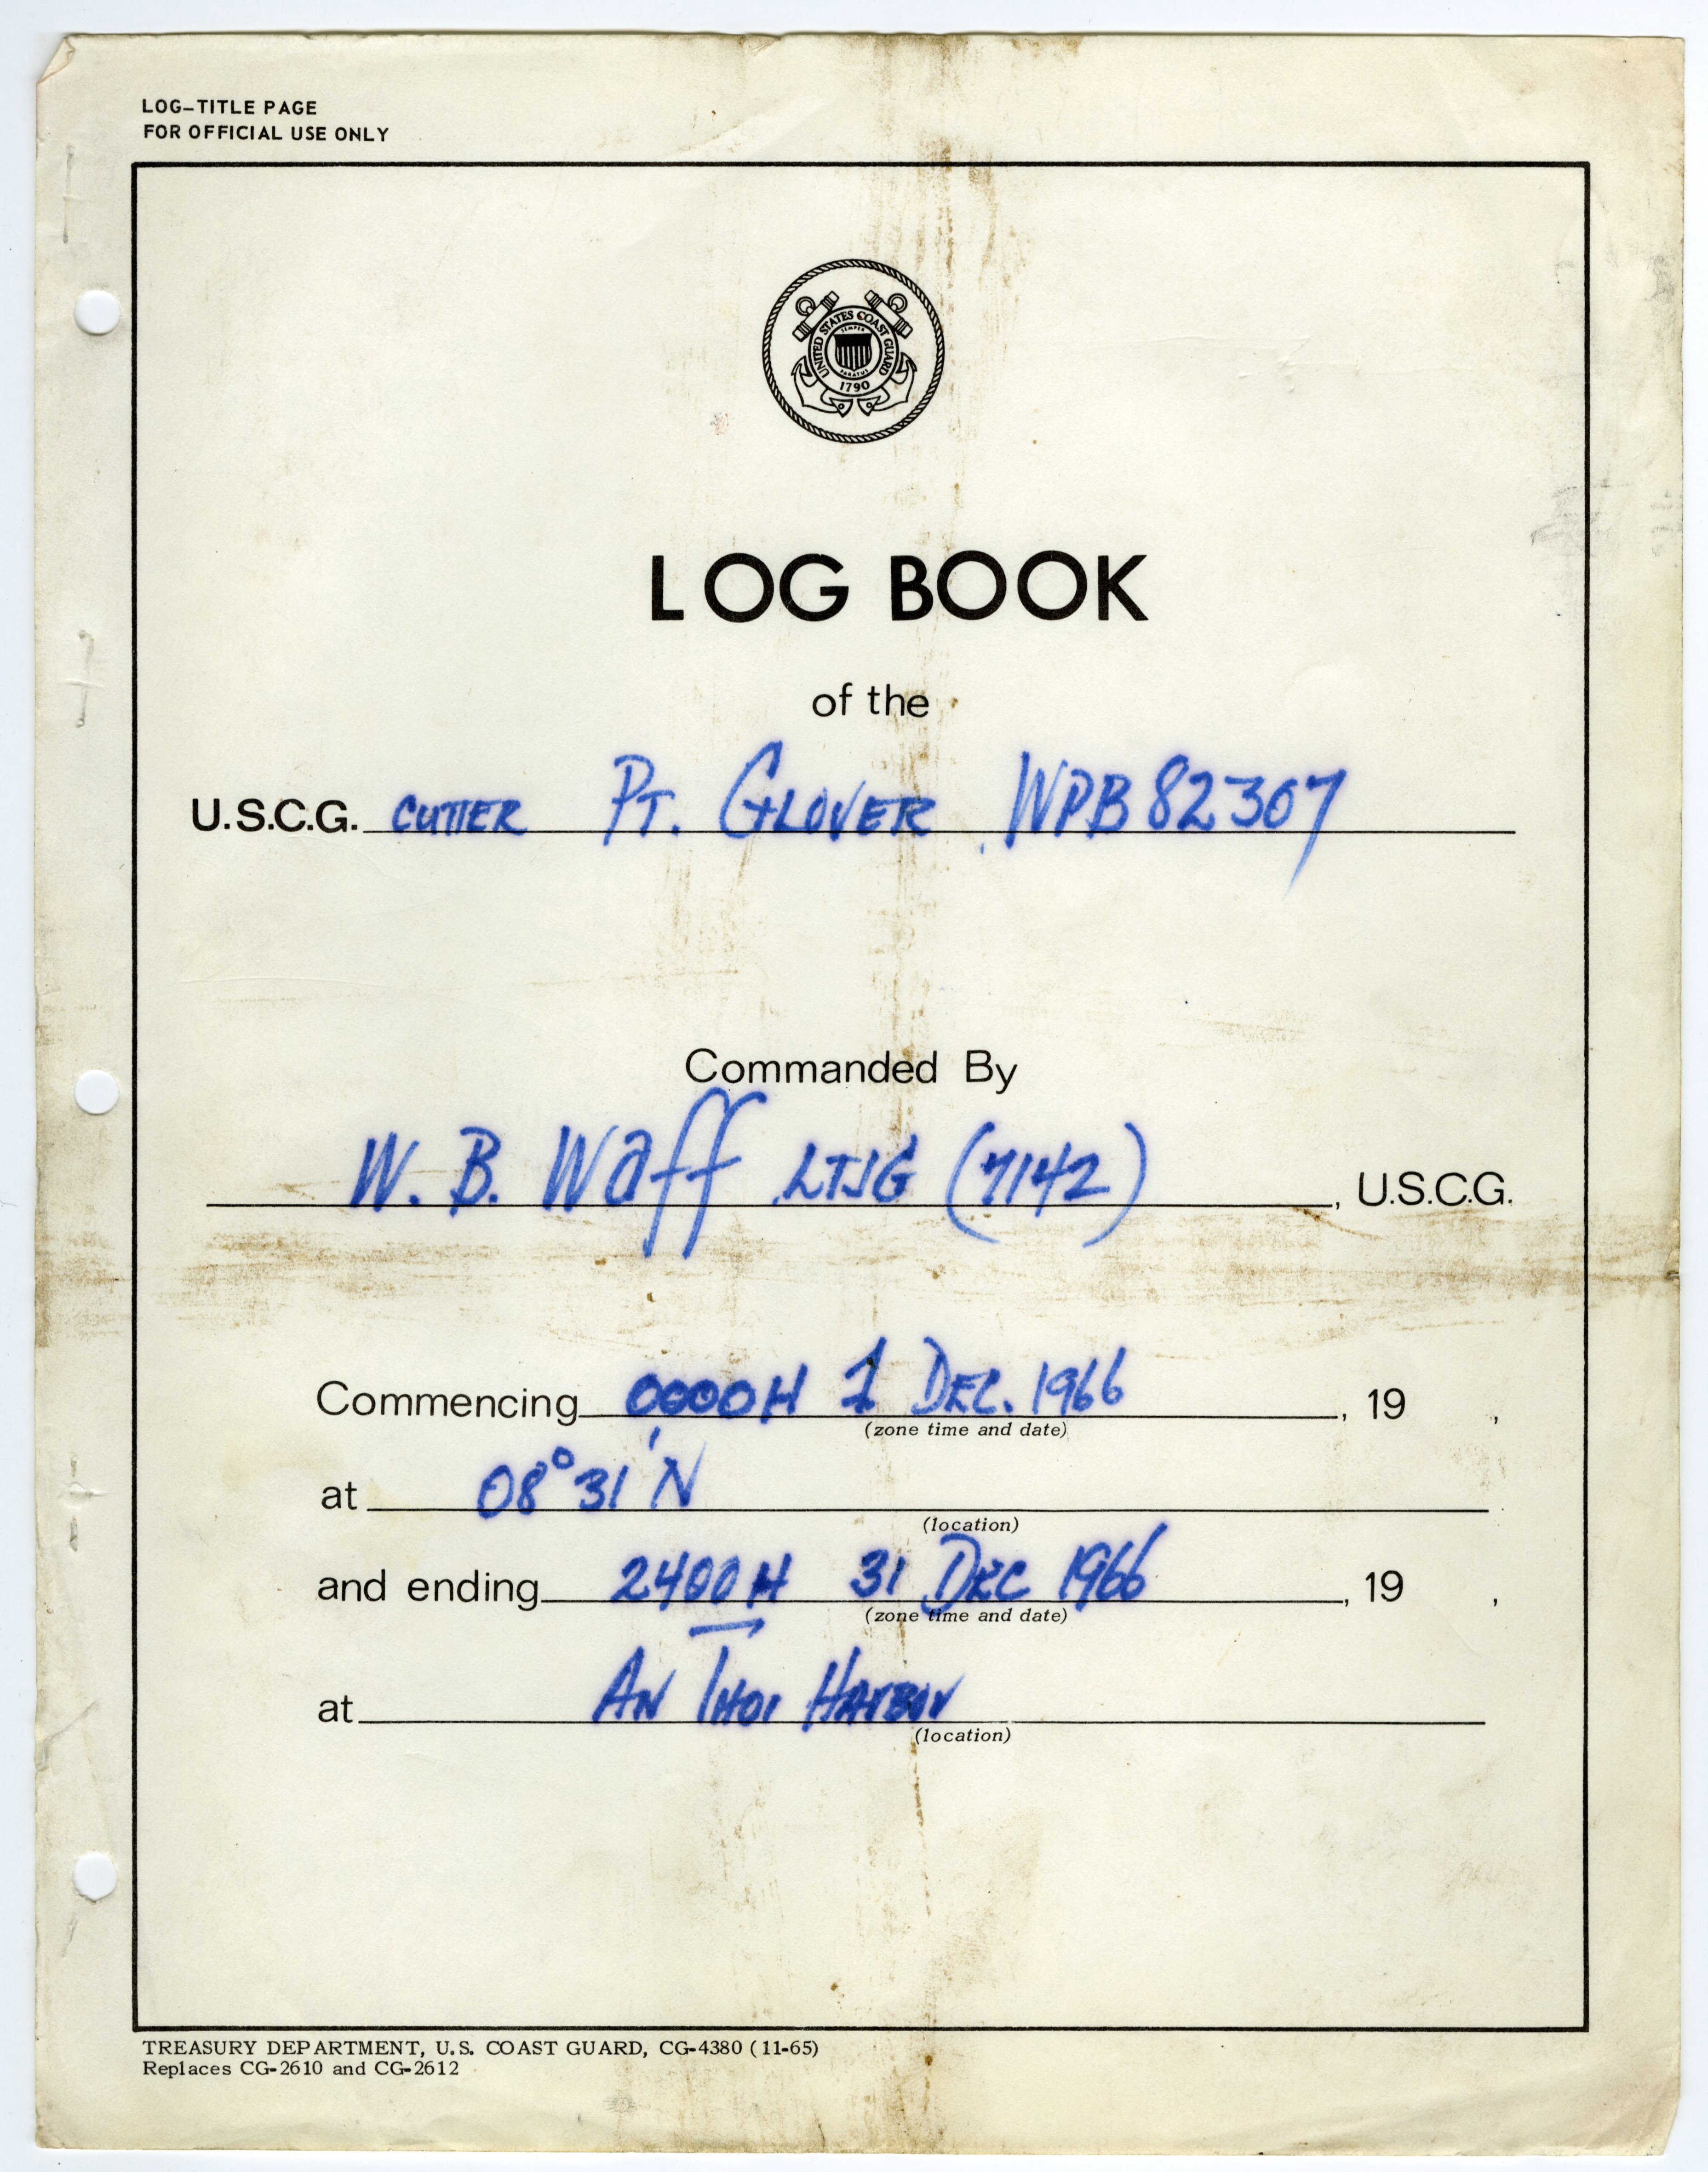 Logbook cover for the USCG Point Glover